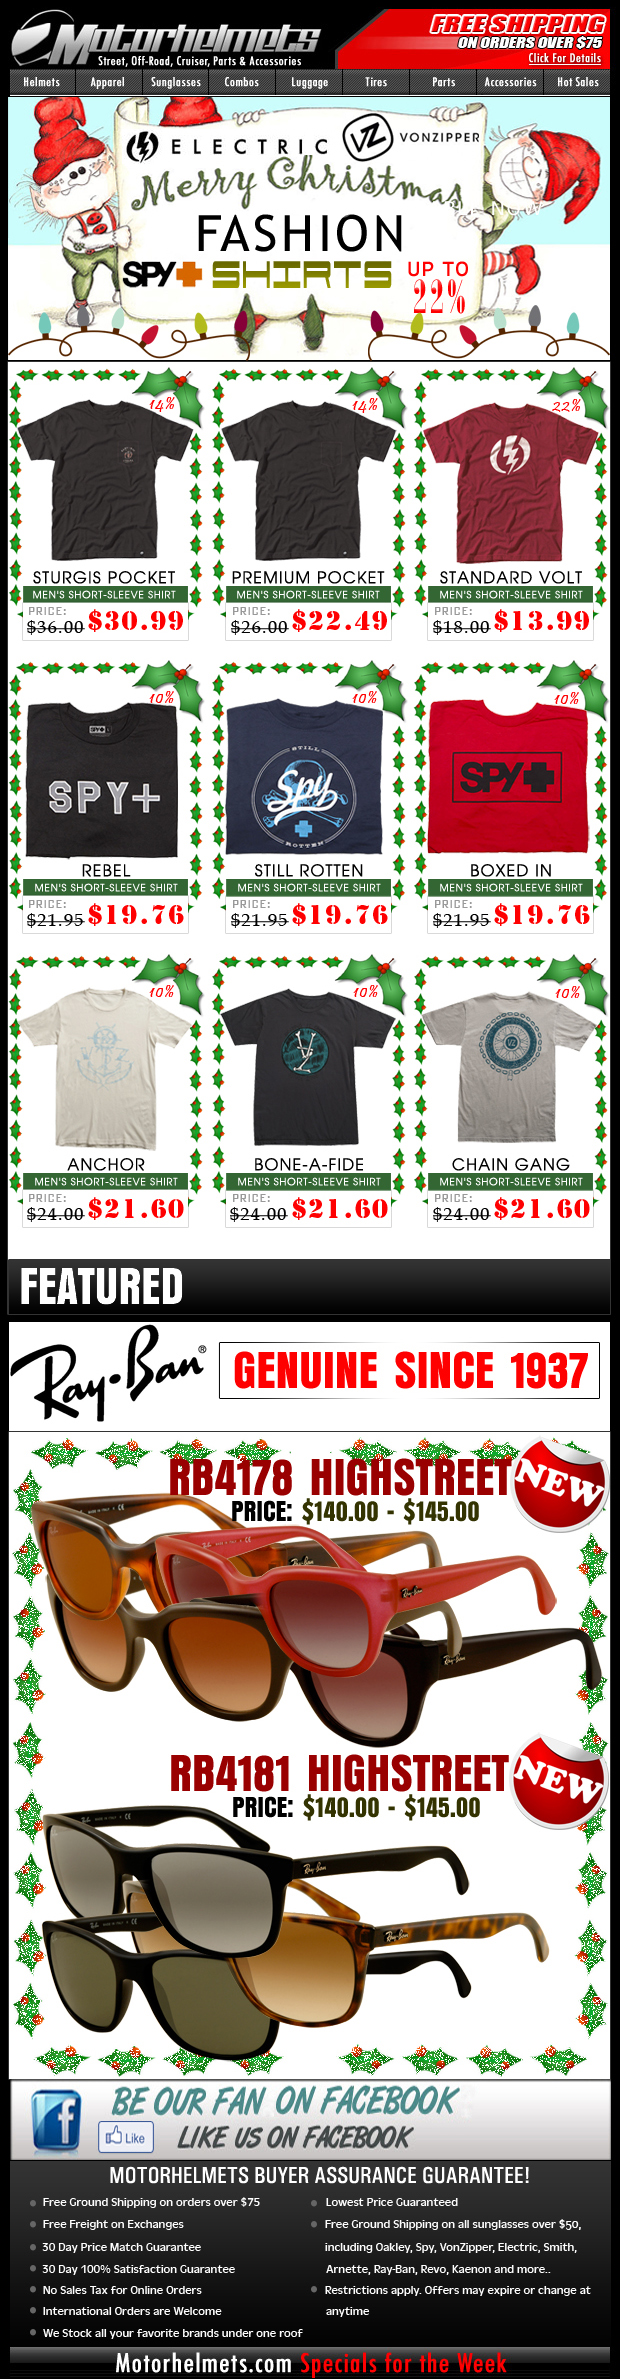 Holiday Specials from Electric, Spy and VZ...up to 22% off on Selected Premium Tees!